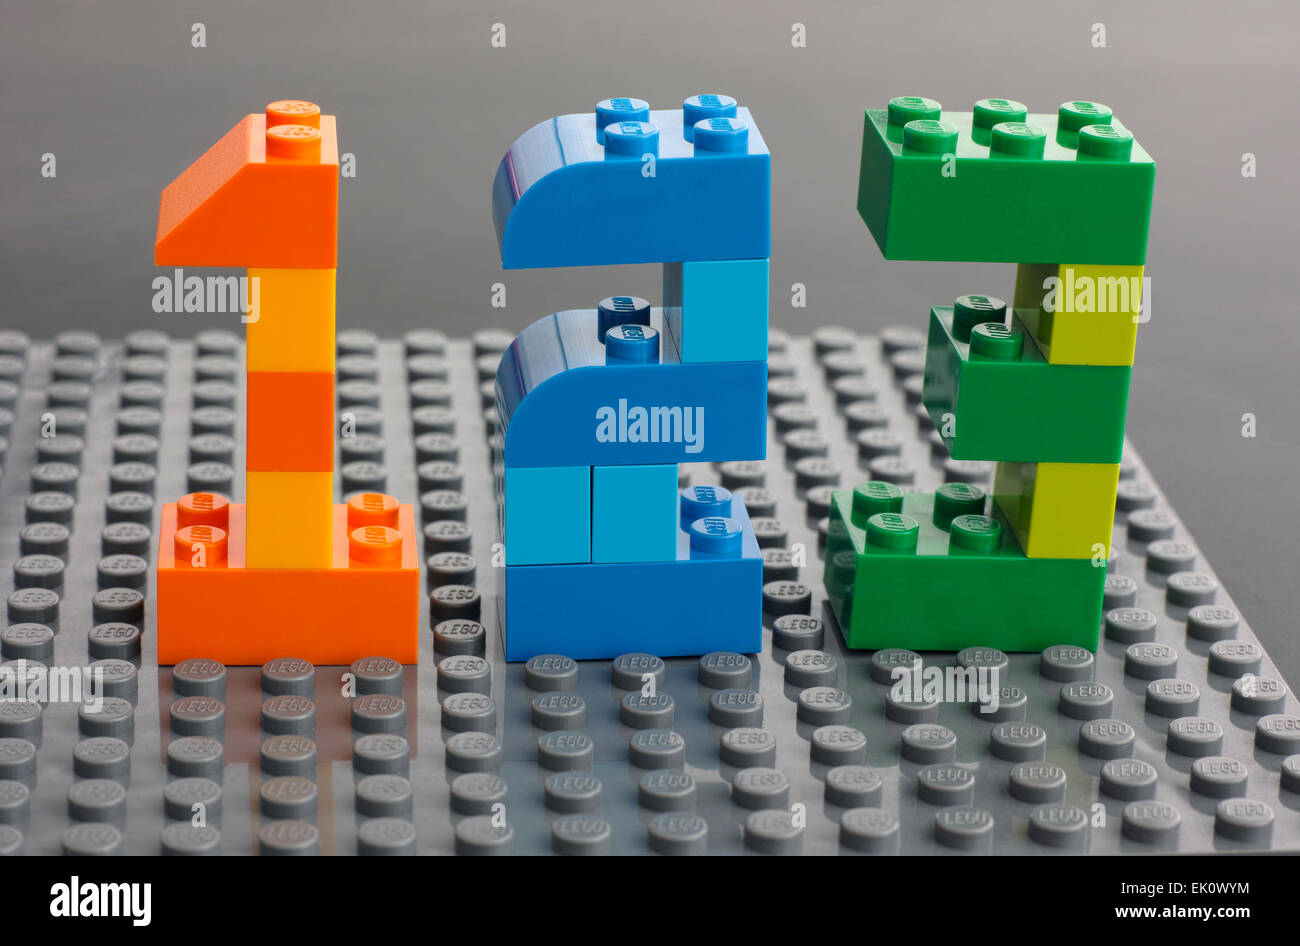 Lego Numbers Stock Photos   Lego Numbers Stock Images   Alamy Tambov  Russian Federation   March 27  2015 Lego custom numbers 1  2